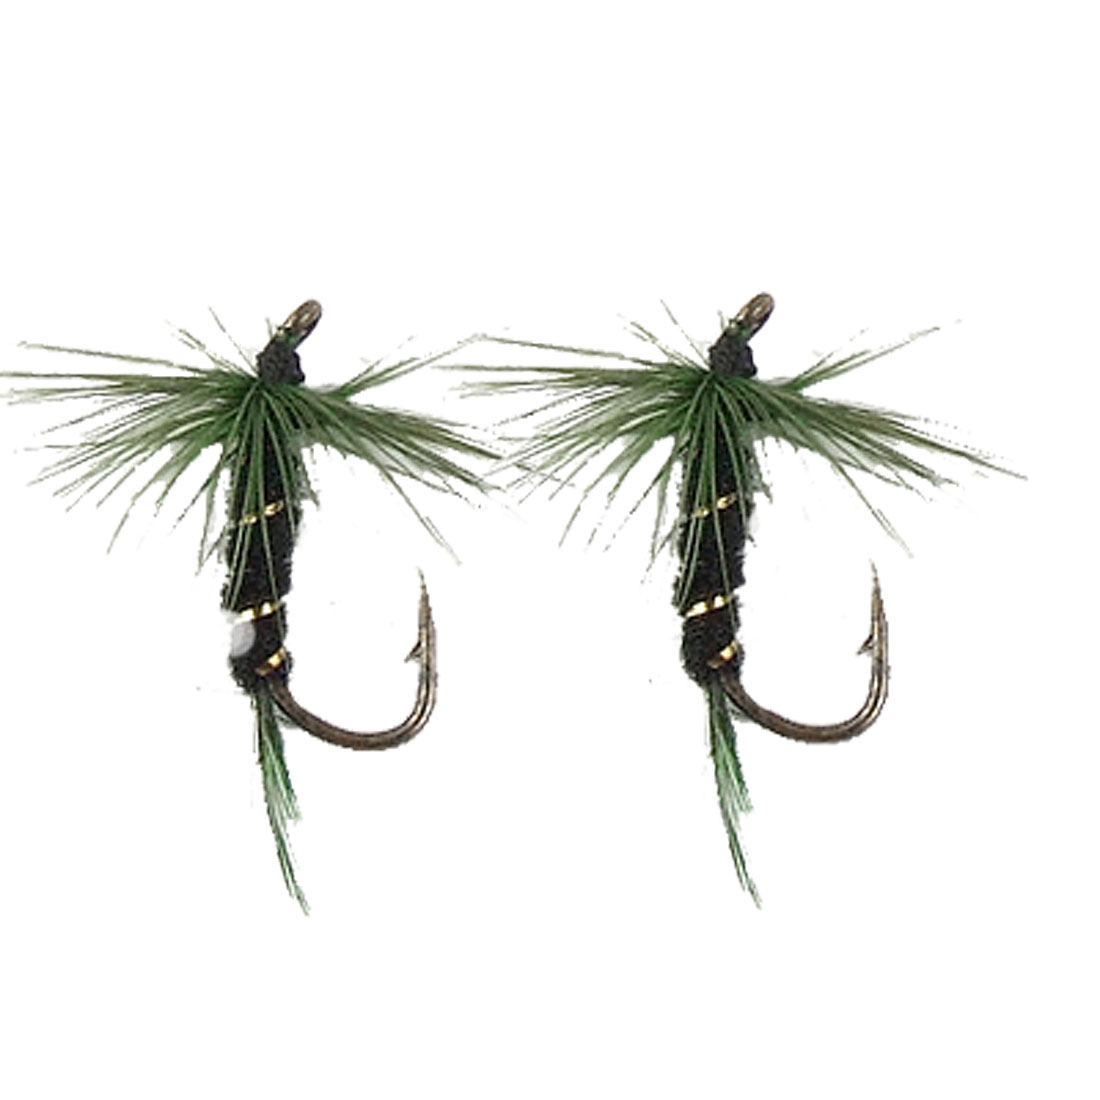 2 Pcs Fish Dry Fly Fishing Green Floss Hook Tackle Simulate Lure